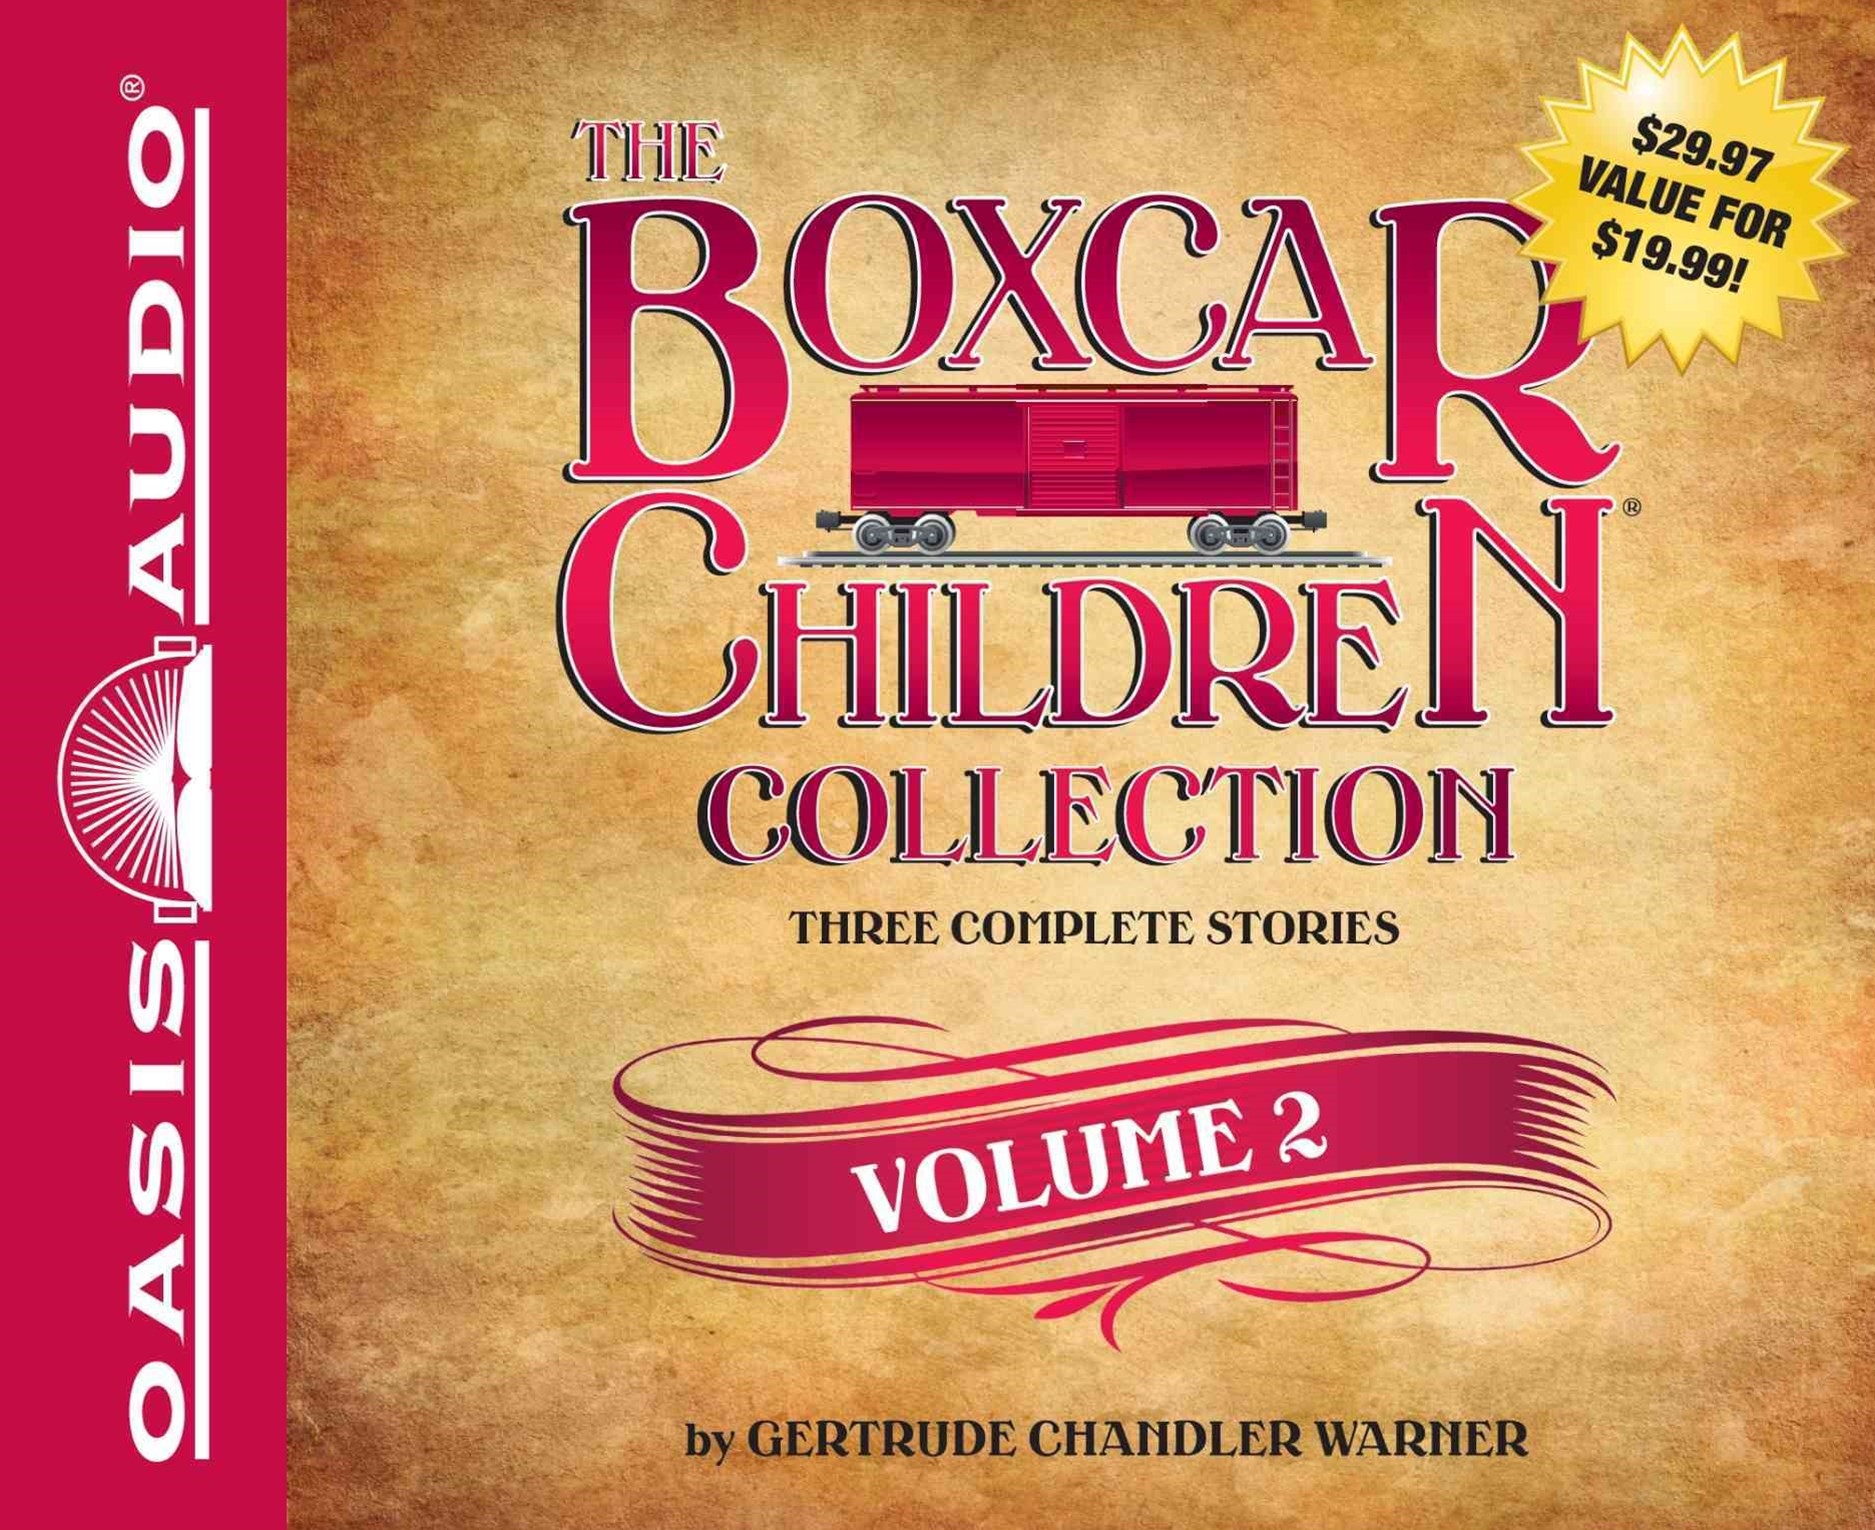 The Boxcar Children Collection Volume 2